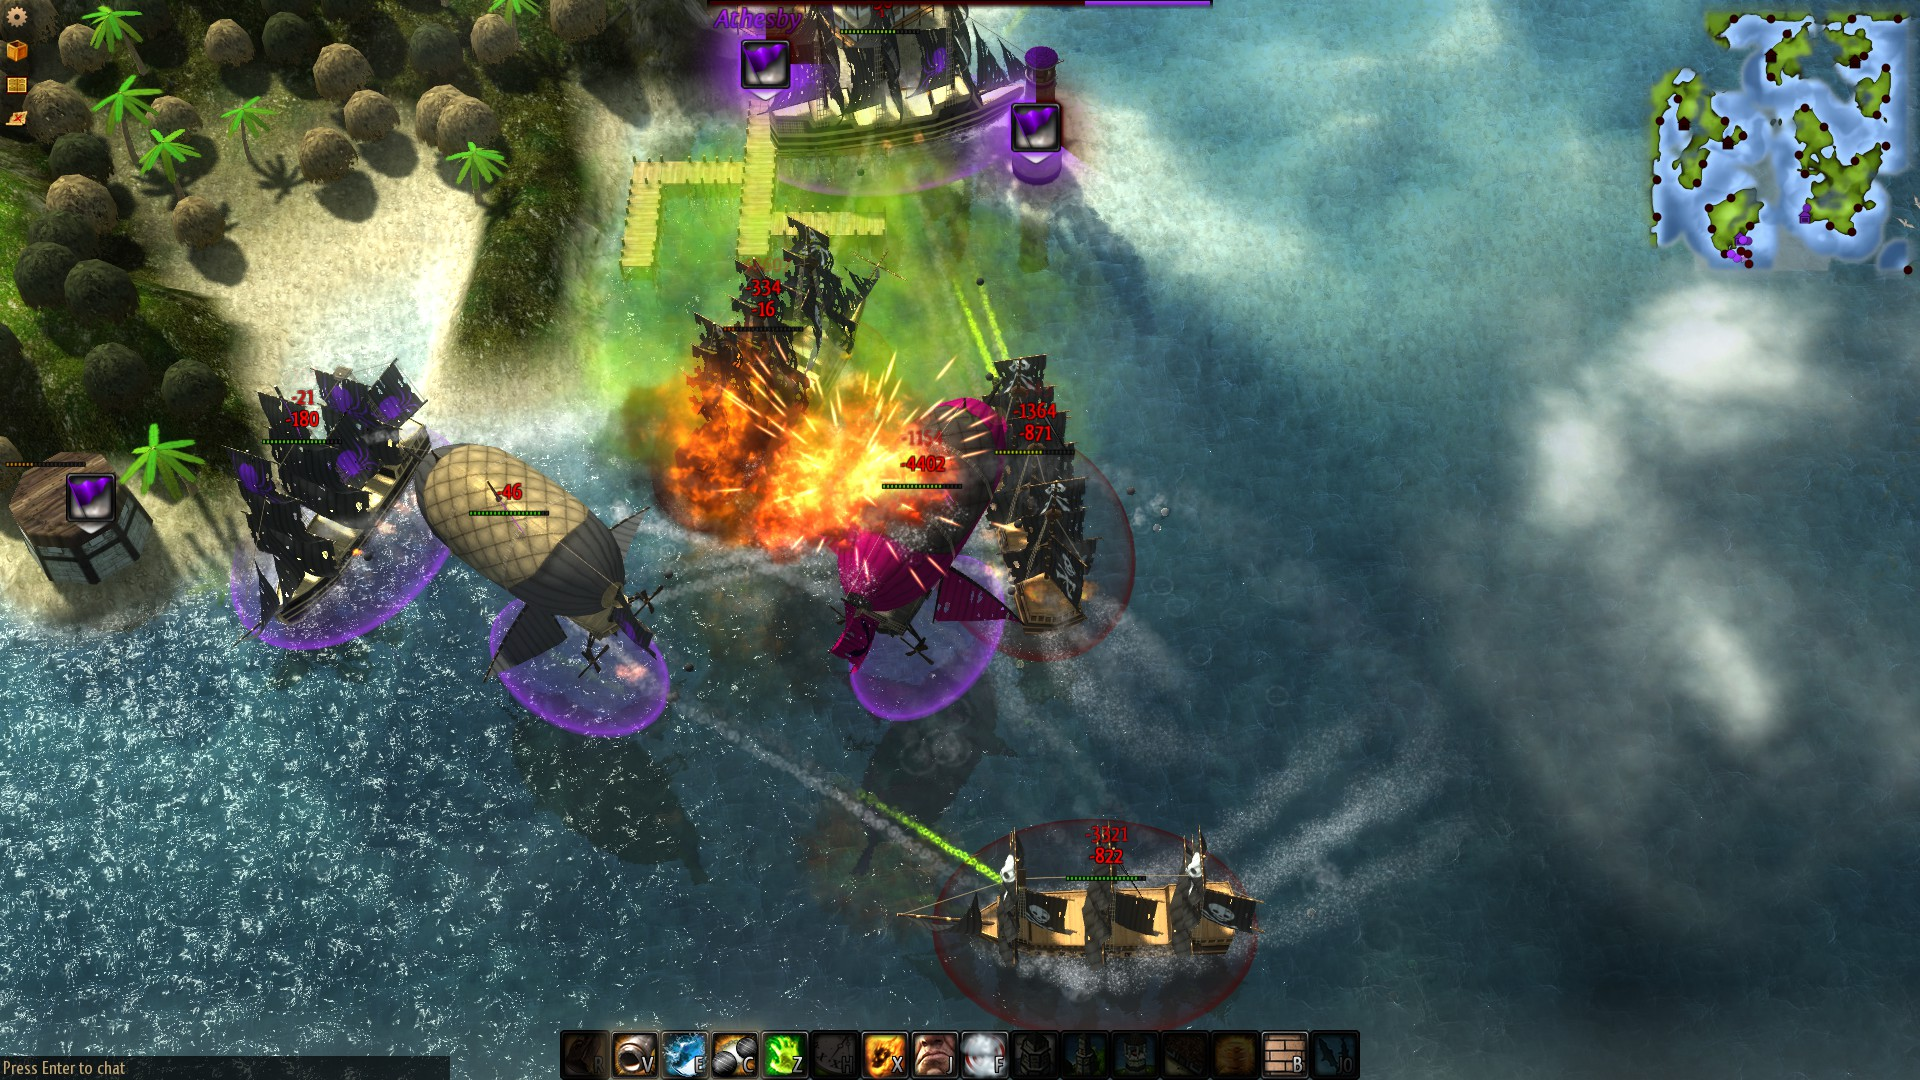 Windward procedurally generated action game set to leave Early Access